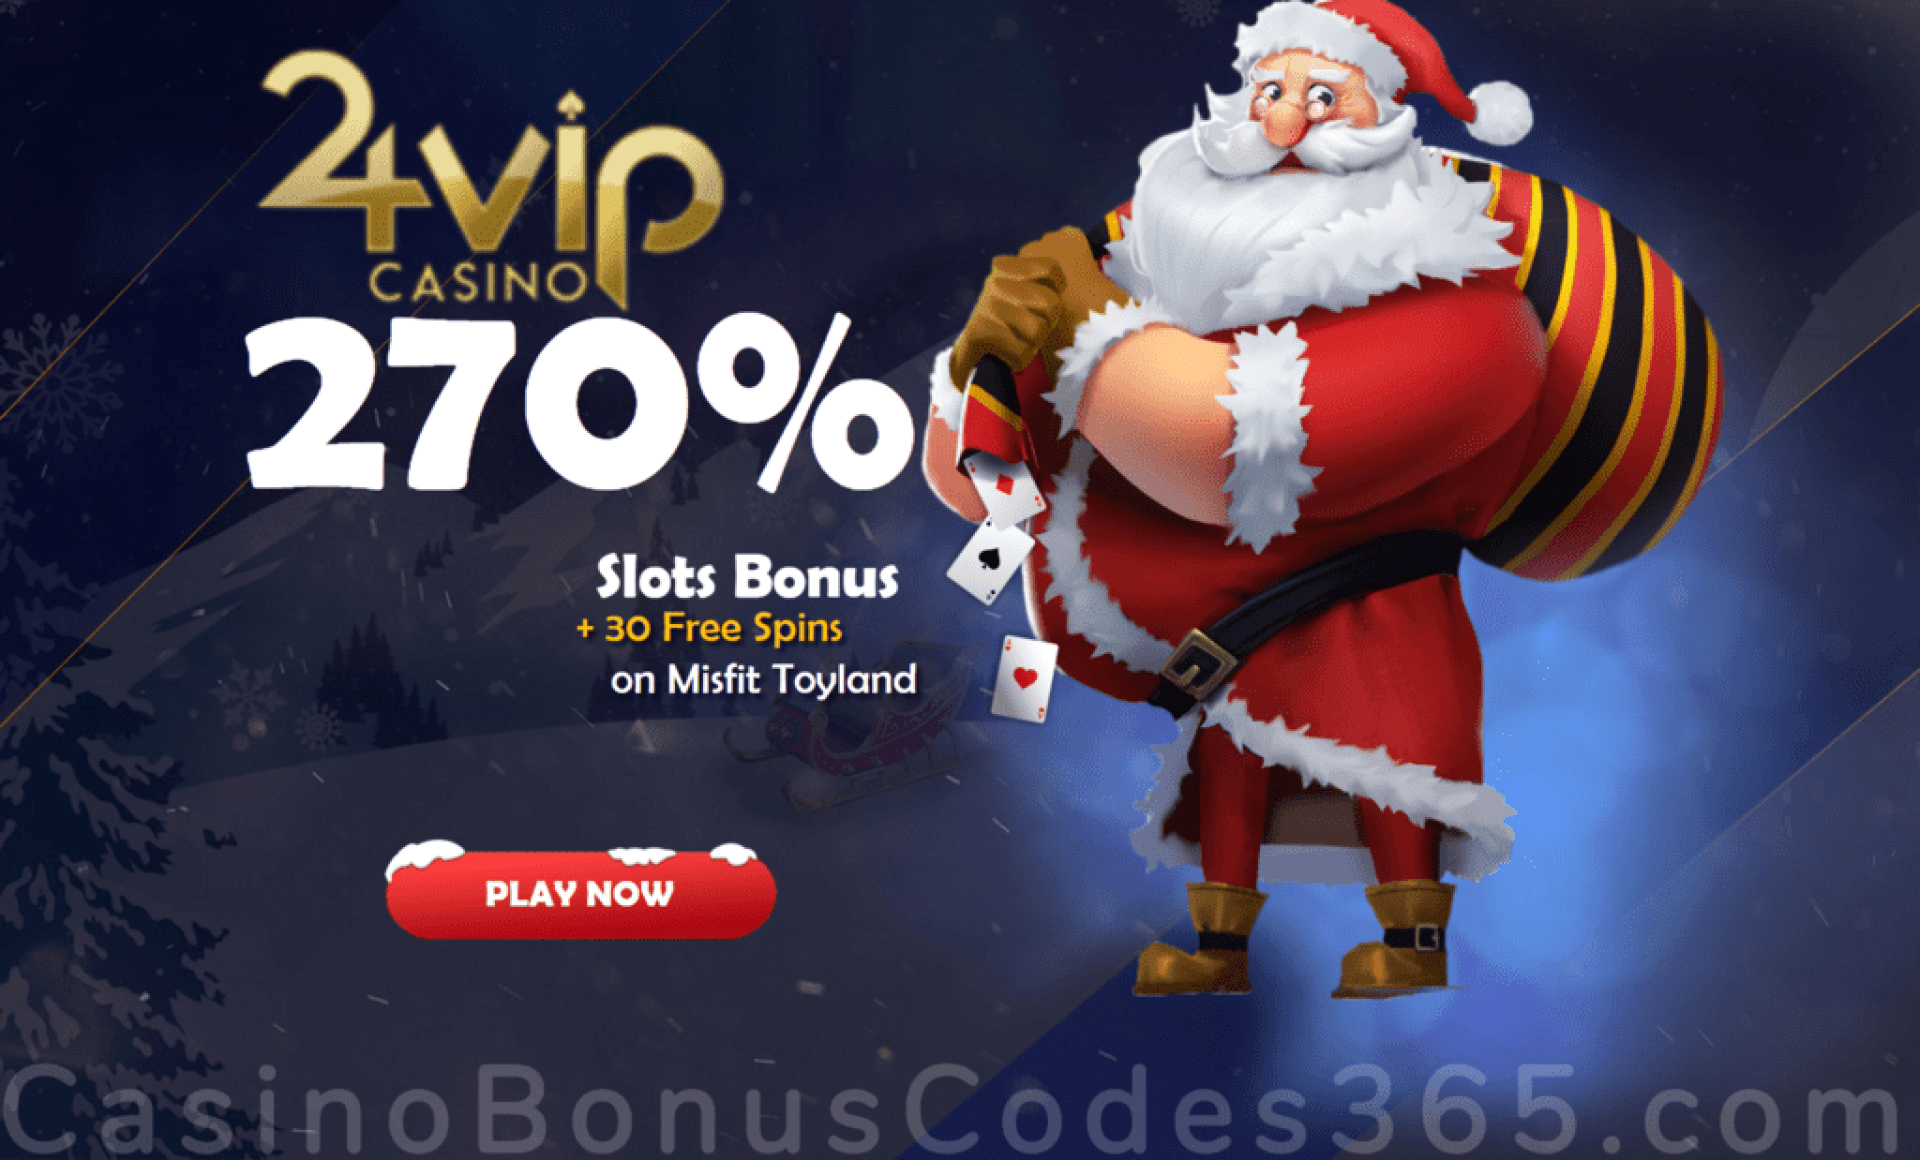 24VIP Casino 270% Match Bonus plus 30 FREE Spins on Rival Gaming Misfit Toyland Christmas Special Offer